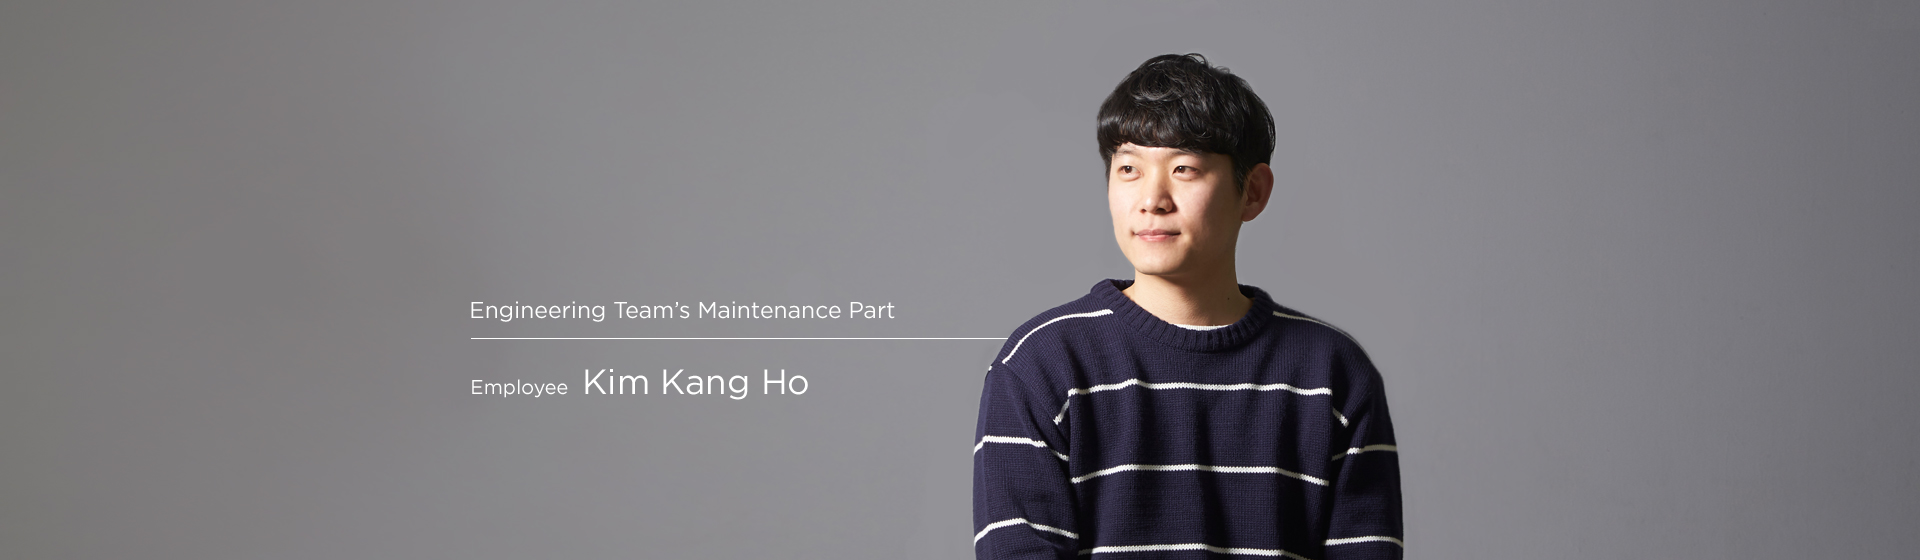 Mechanical Maintenance - Gangho Kim